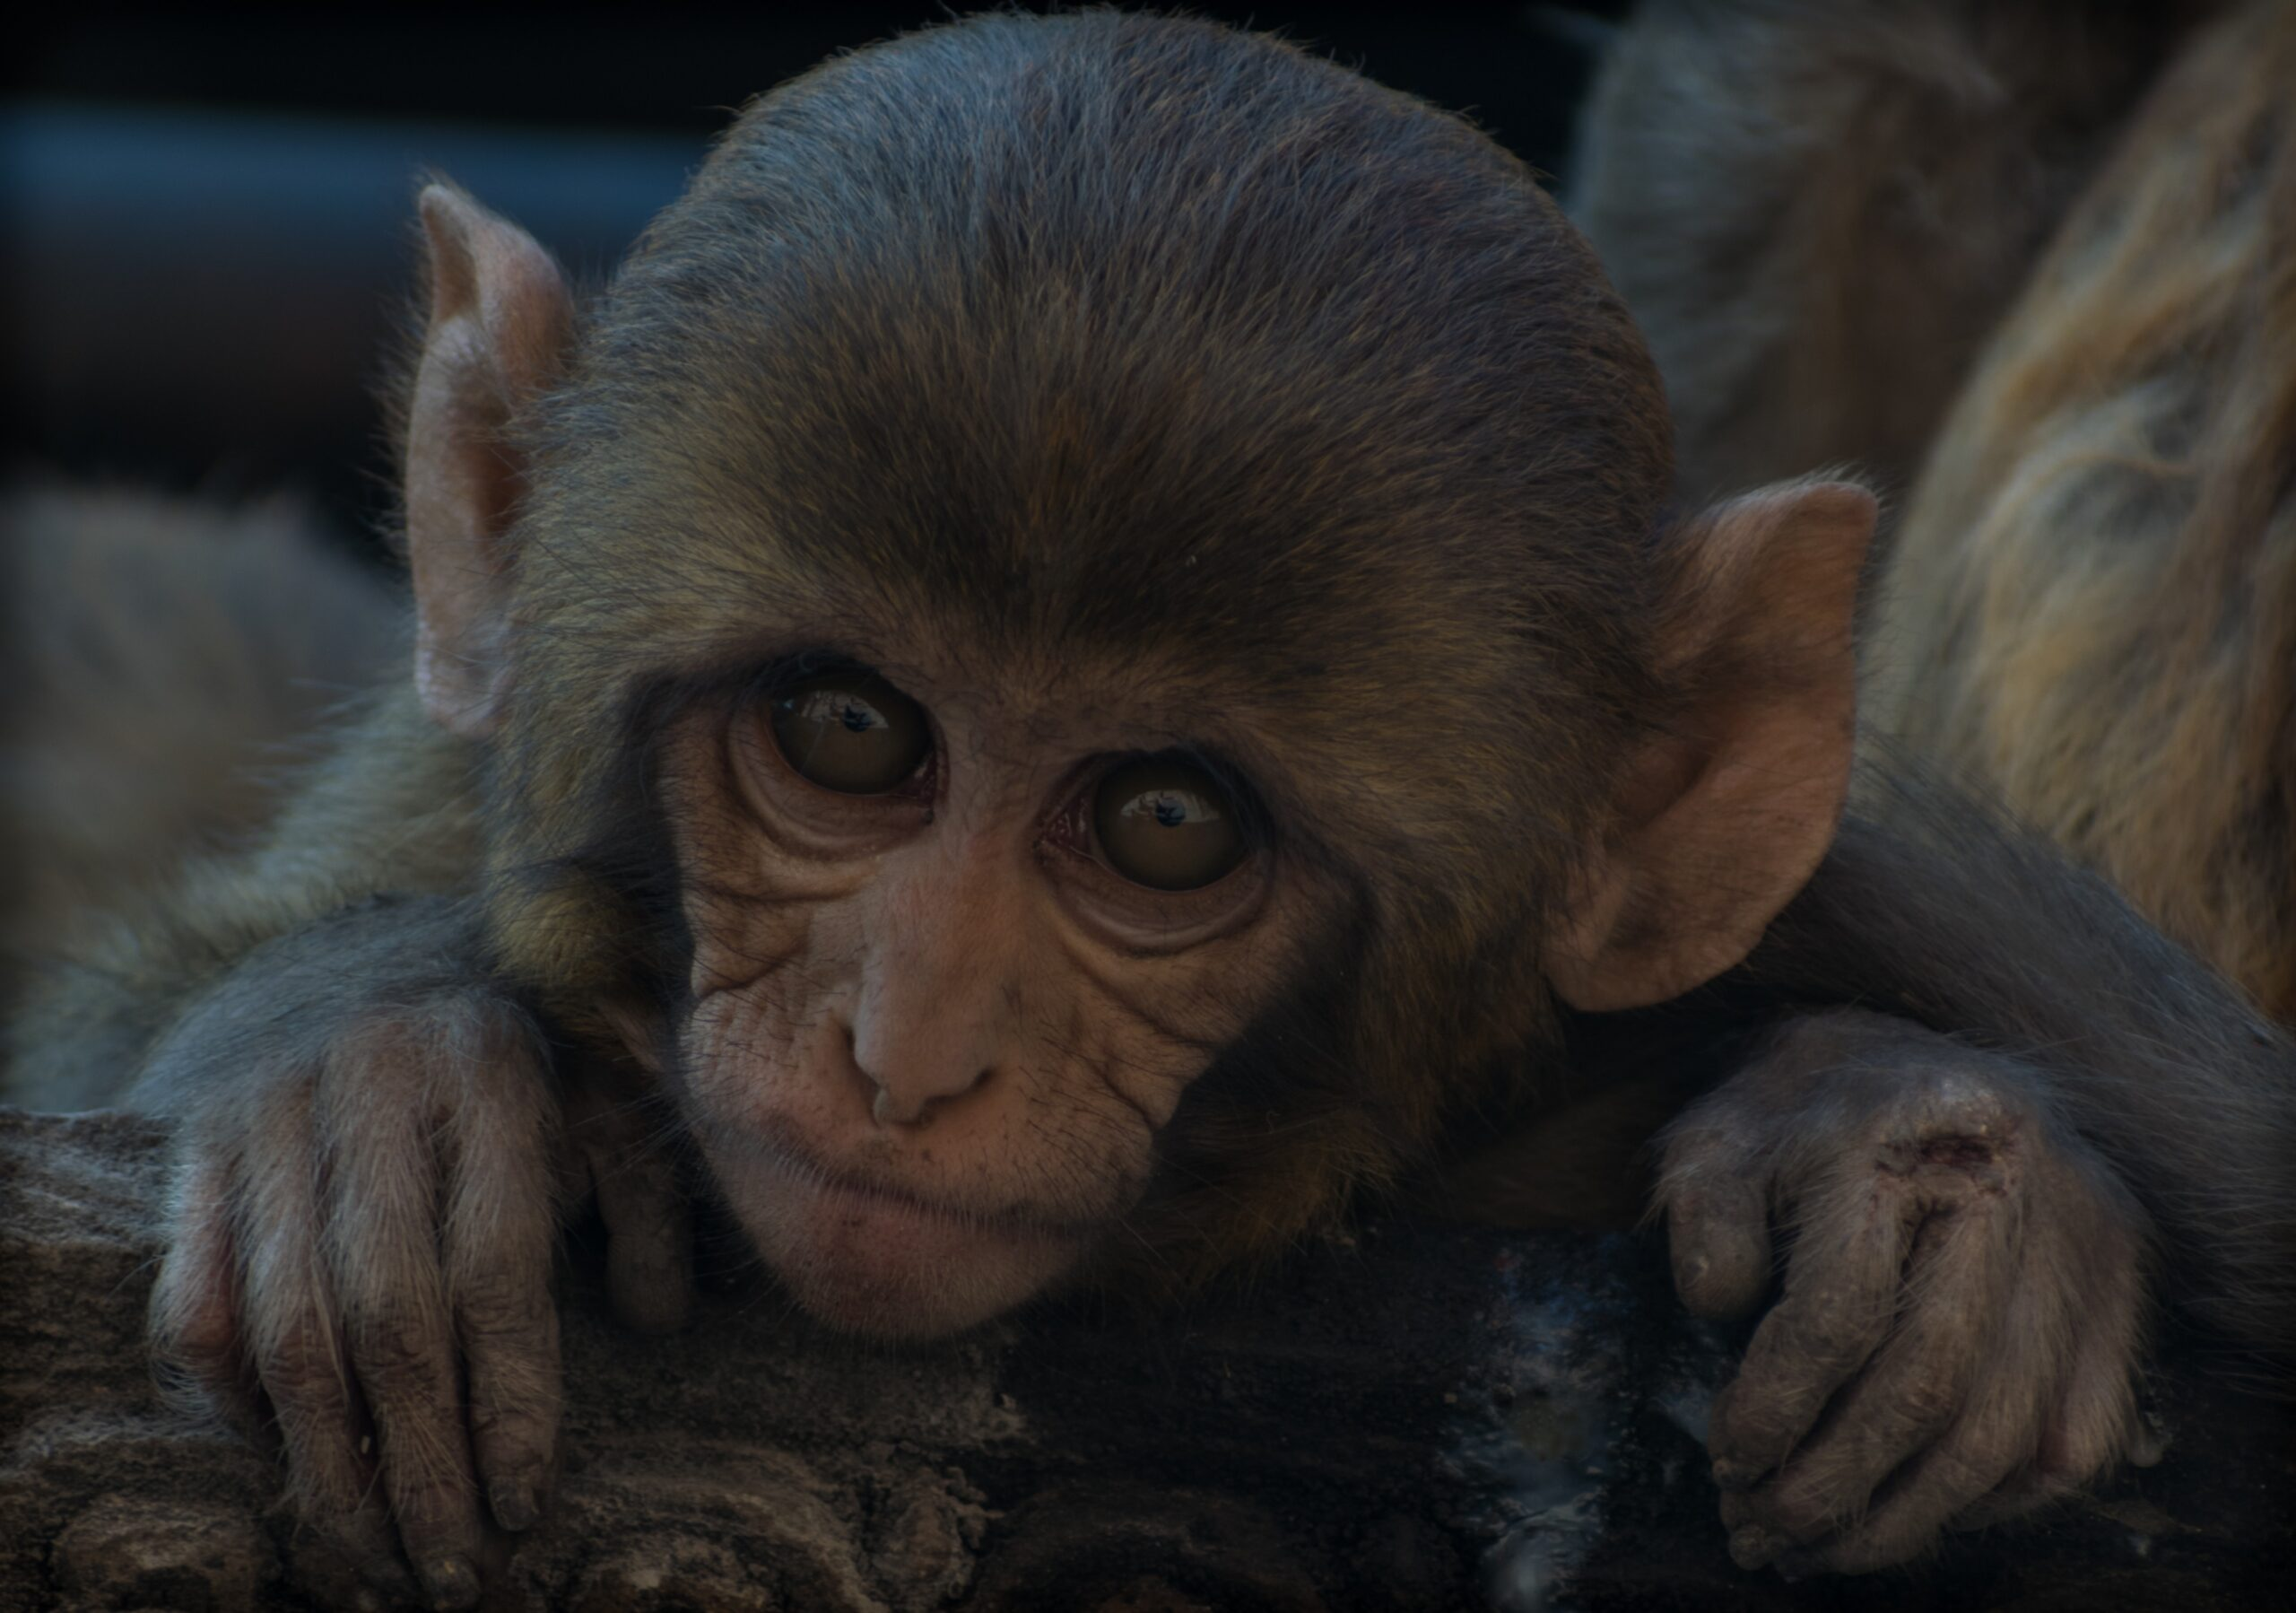 maskedemann-Baby Monkey up close Nepal -unsplash